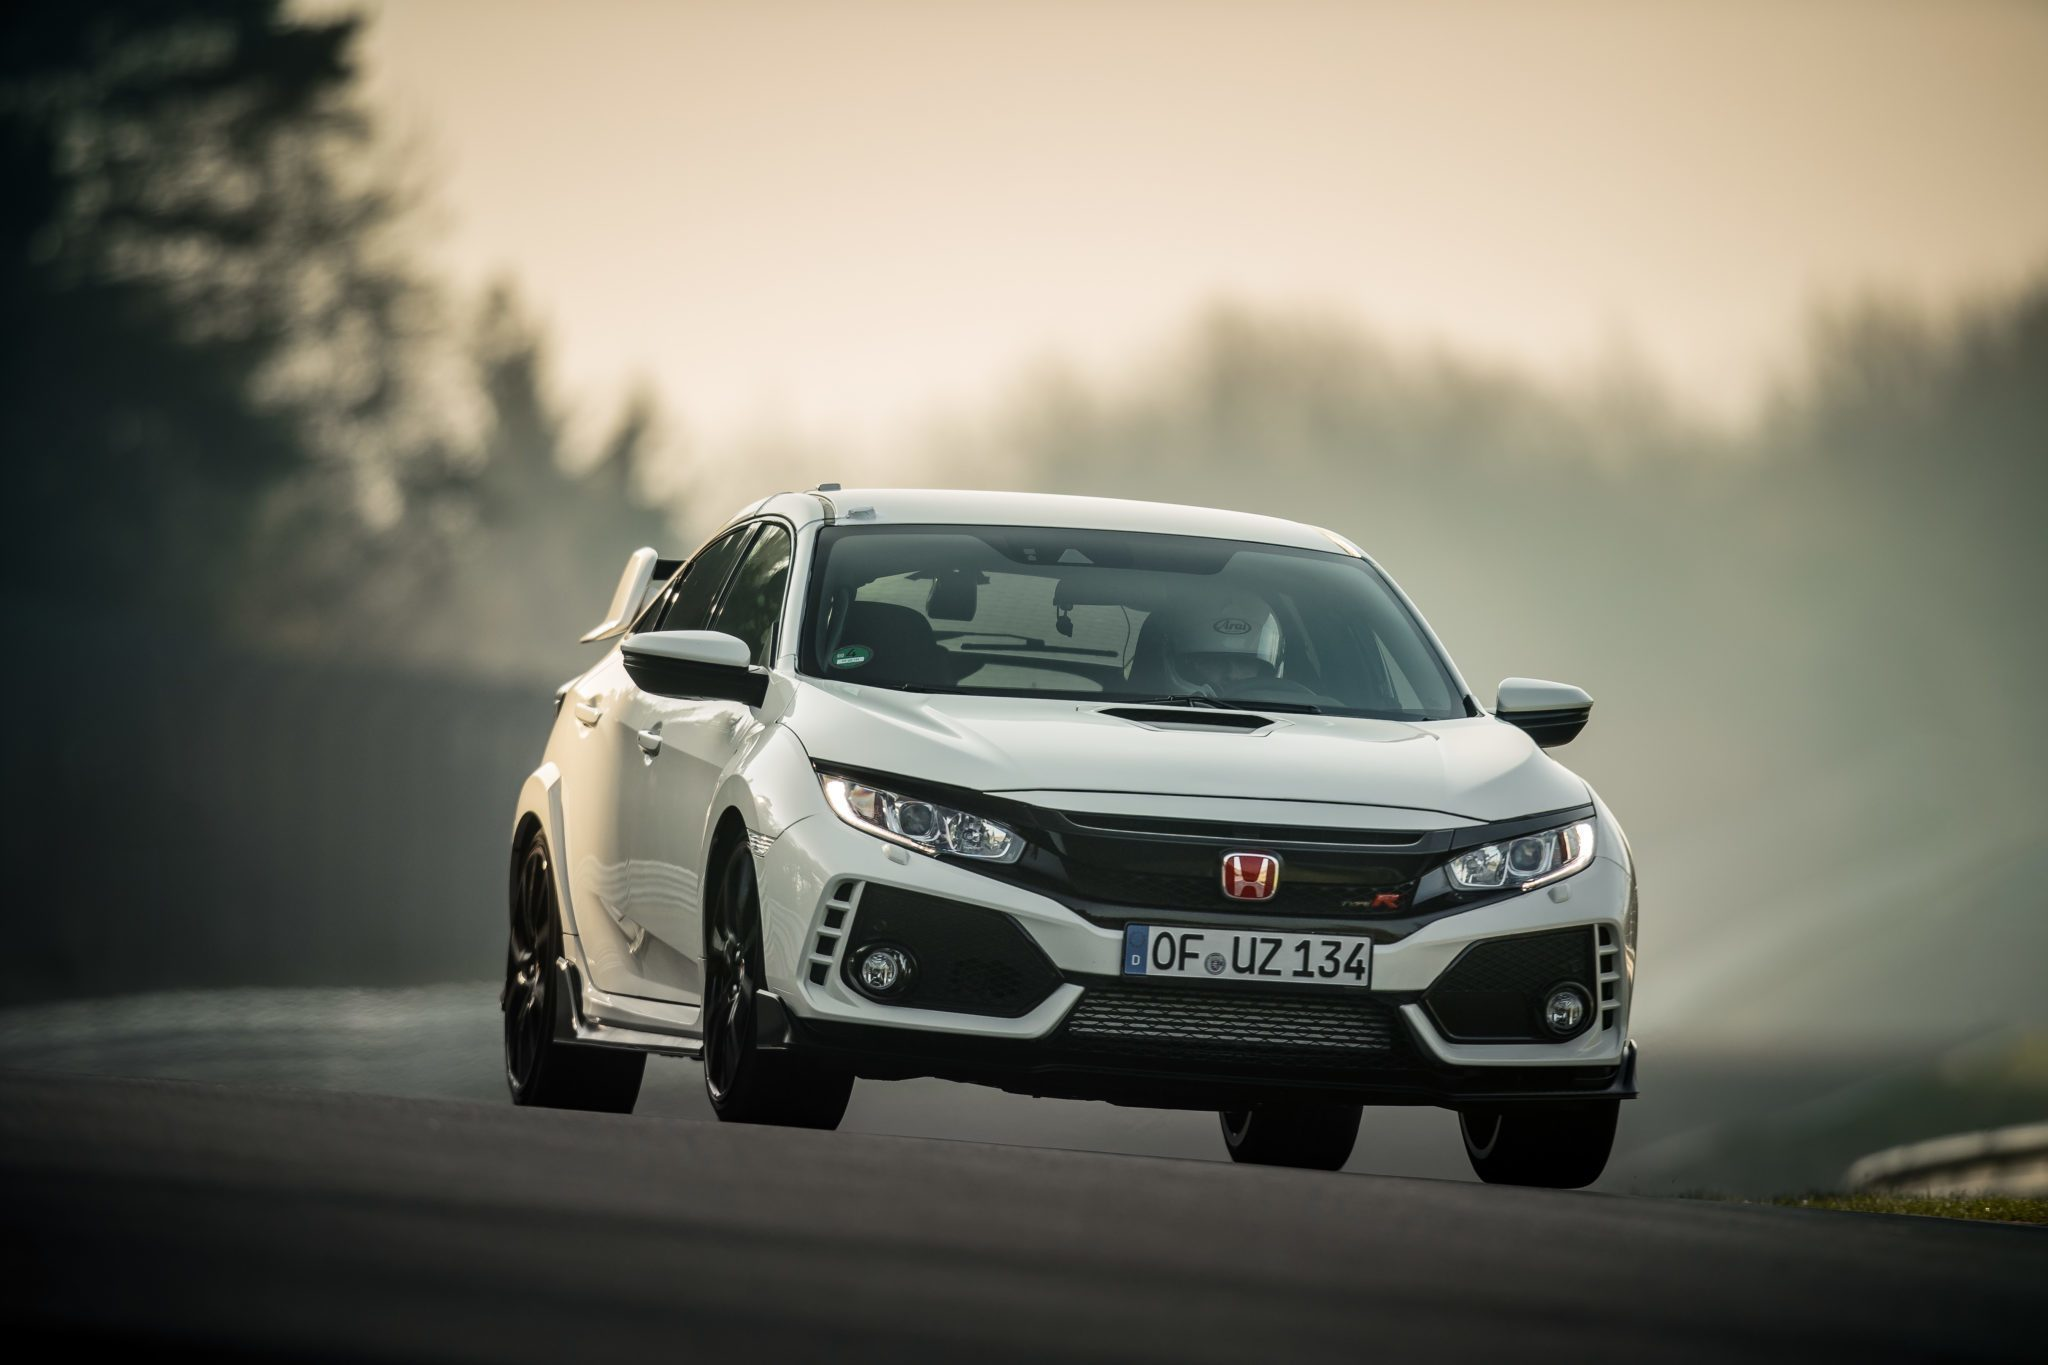 honda 39 s civic type r takes on the n rburgring and wins. Black Bedroom Furniture Sets. Home Design Ideas